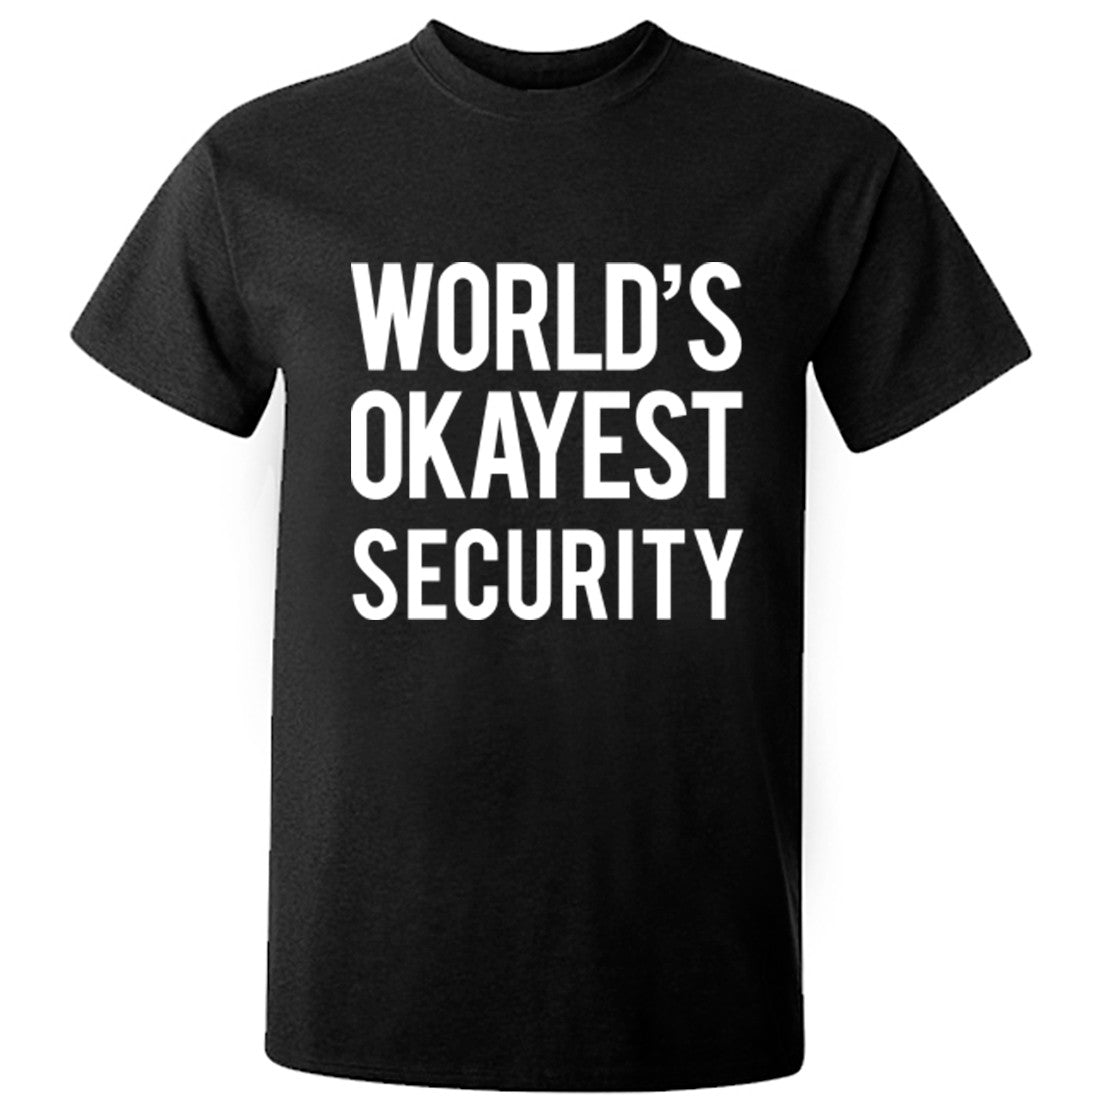 Worlds Okayest Security Unisex Fit T-Shirt K0504 - Illustrated Identity Ltd.